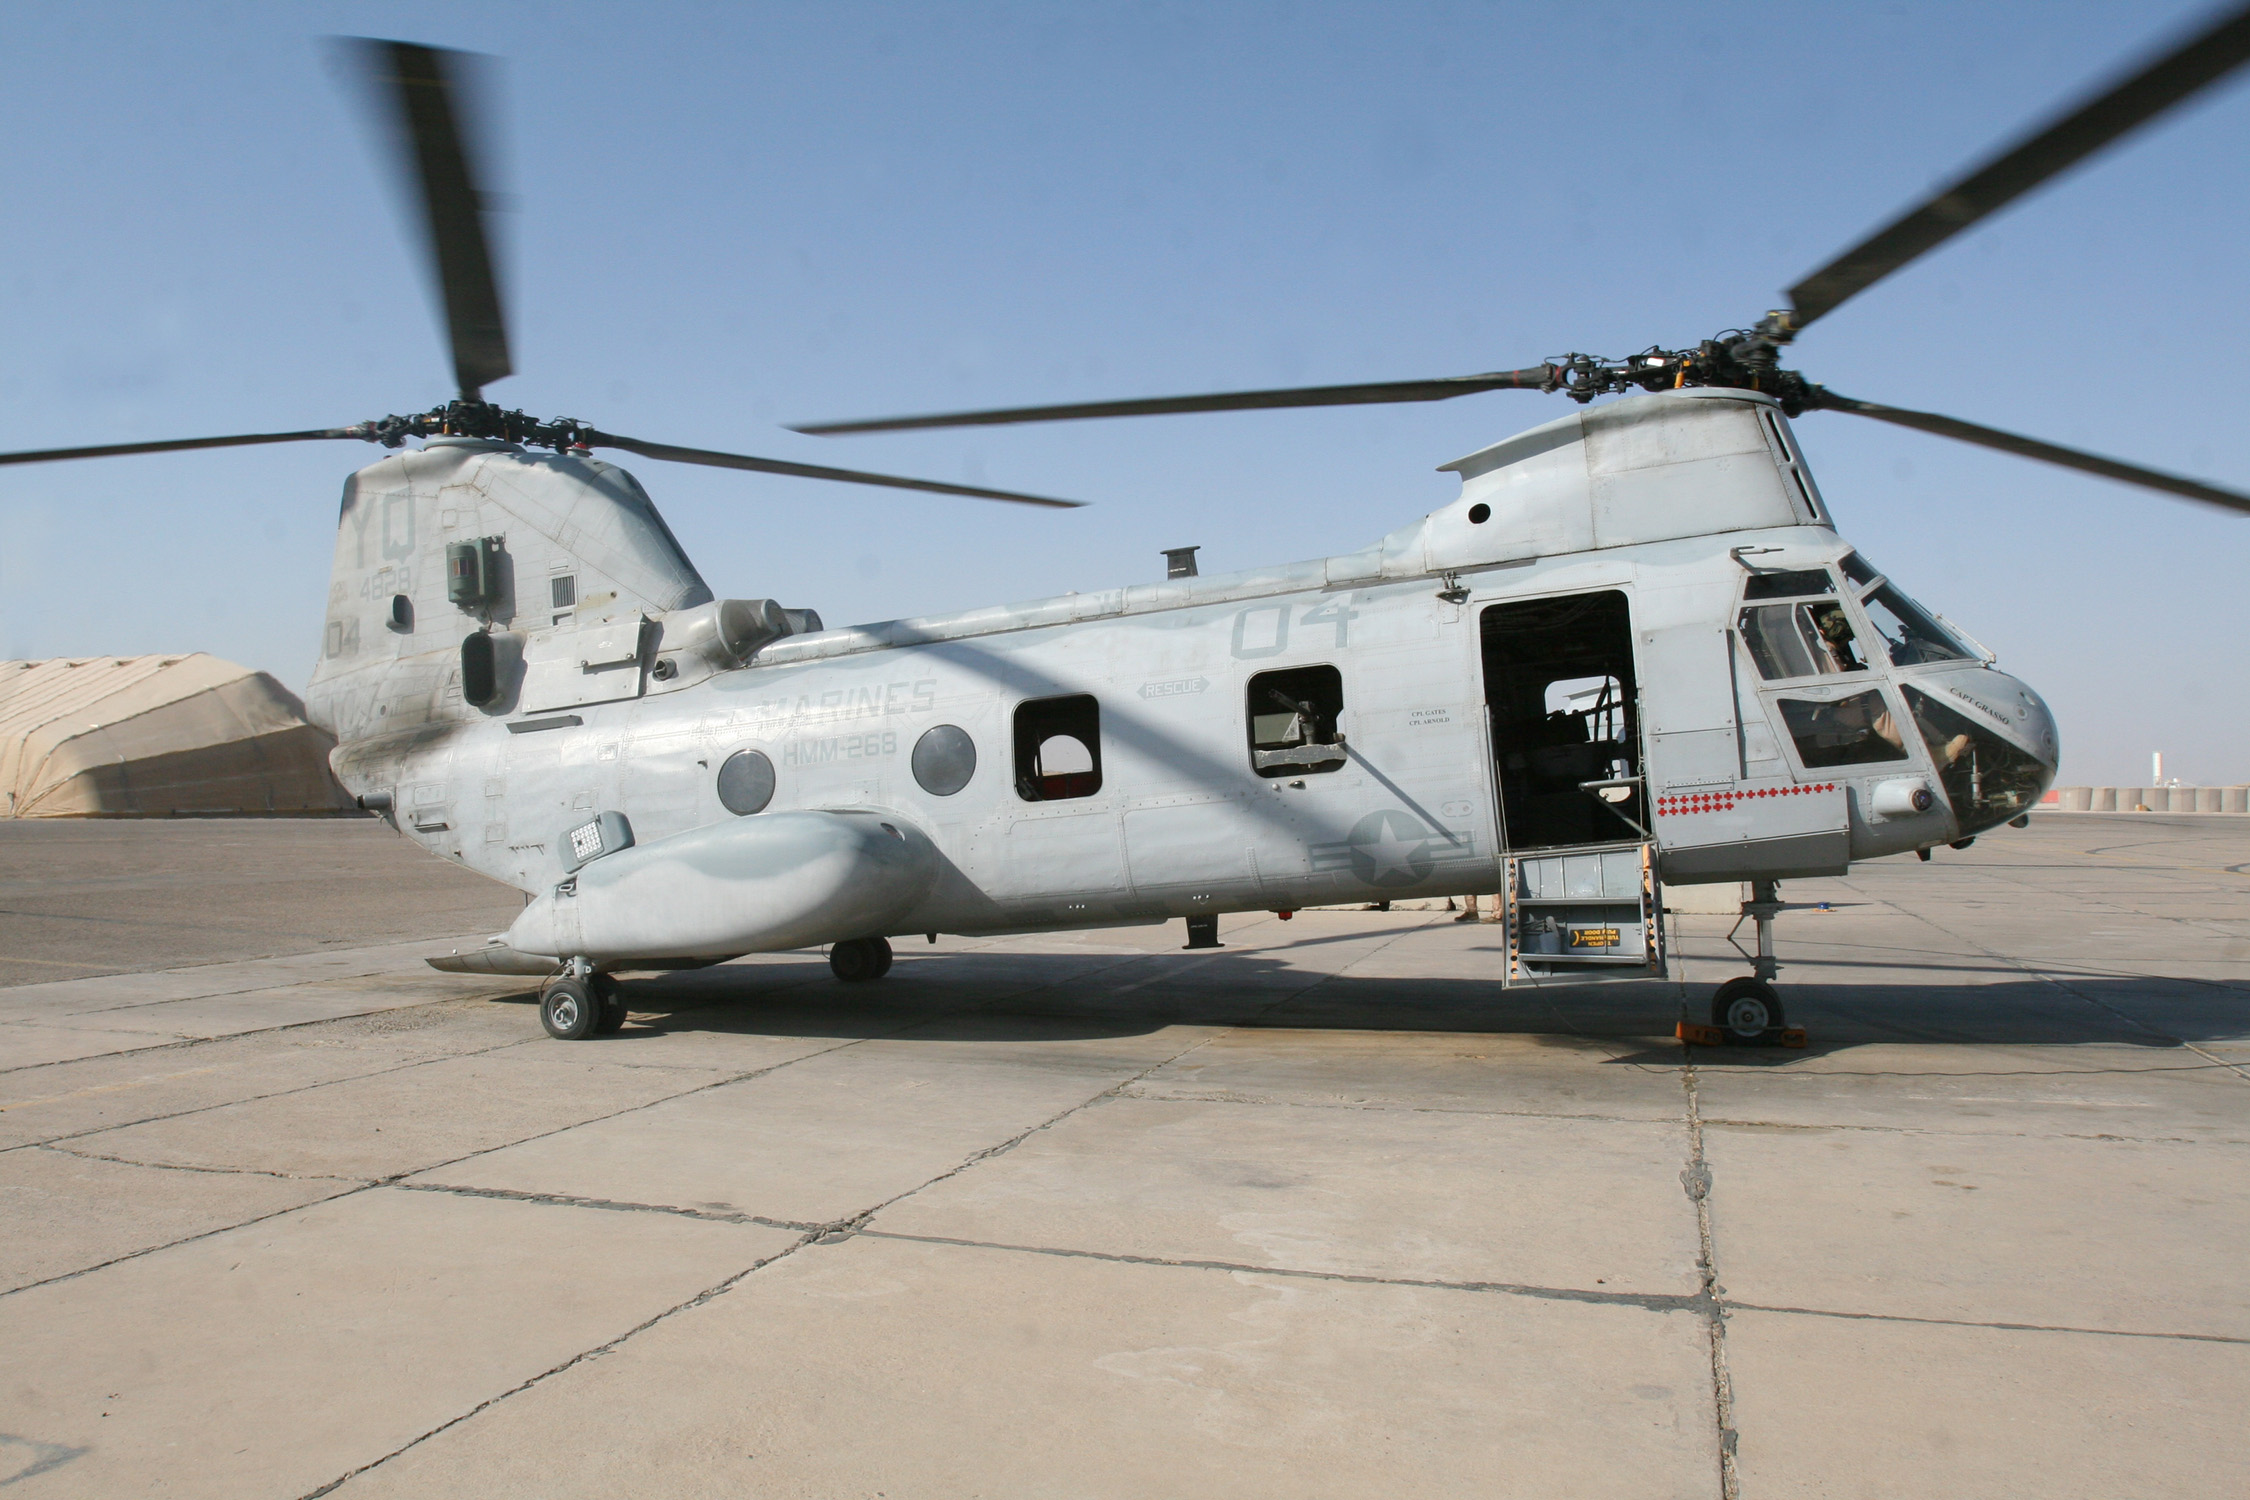 boeing vertol ch-46 sea knight full hd wallpaper and background